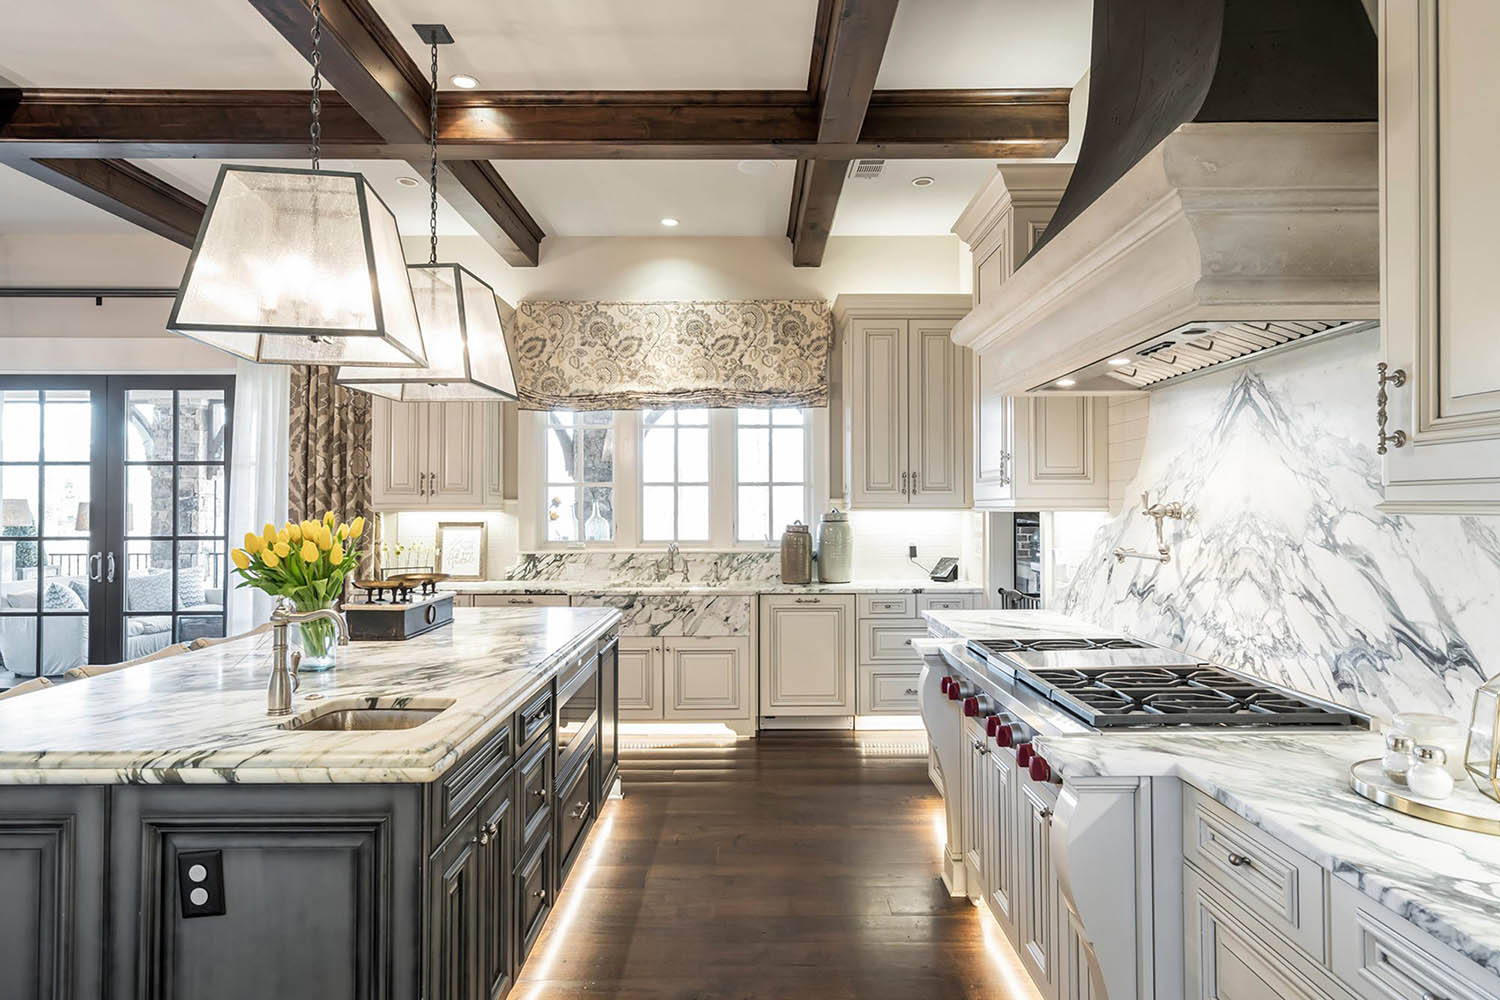 Cream Kitchen Cabinets Design Ideas For Beautiful Kitchens